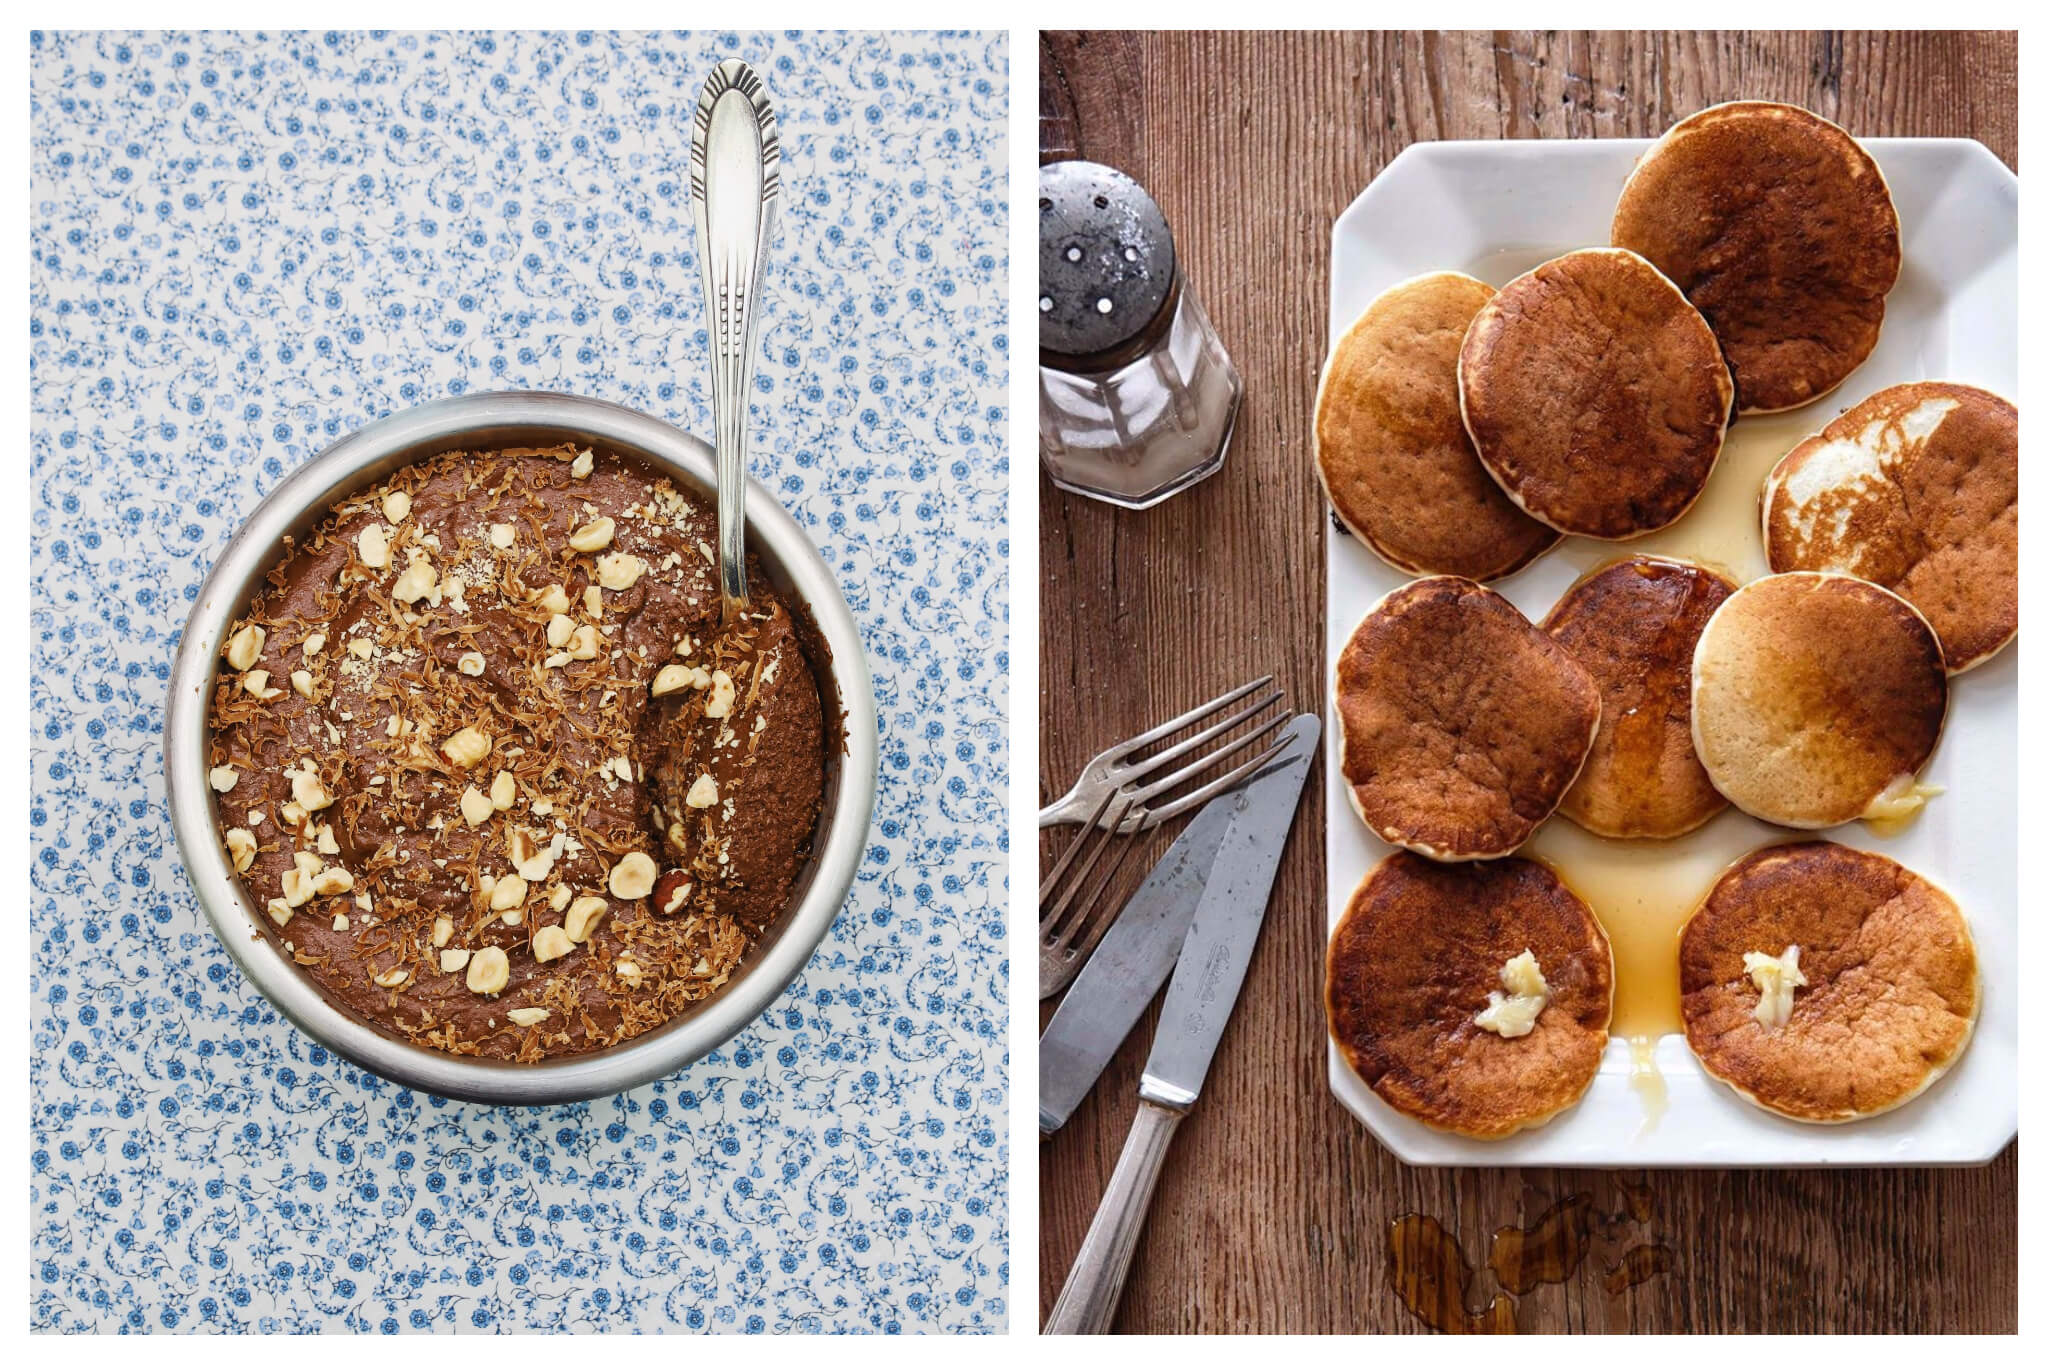 Left: a bowl of chocolate mousse on a blue and white floral background, with a spoon inside, and peanuts sprinkled on top. Right: a plate of pancakes on a wooden table with silver cutlery and a sugar shaker. The pancakes are on a white plate with maple syrup and butter on top.